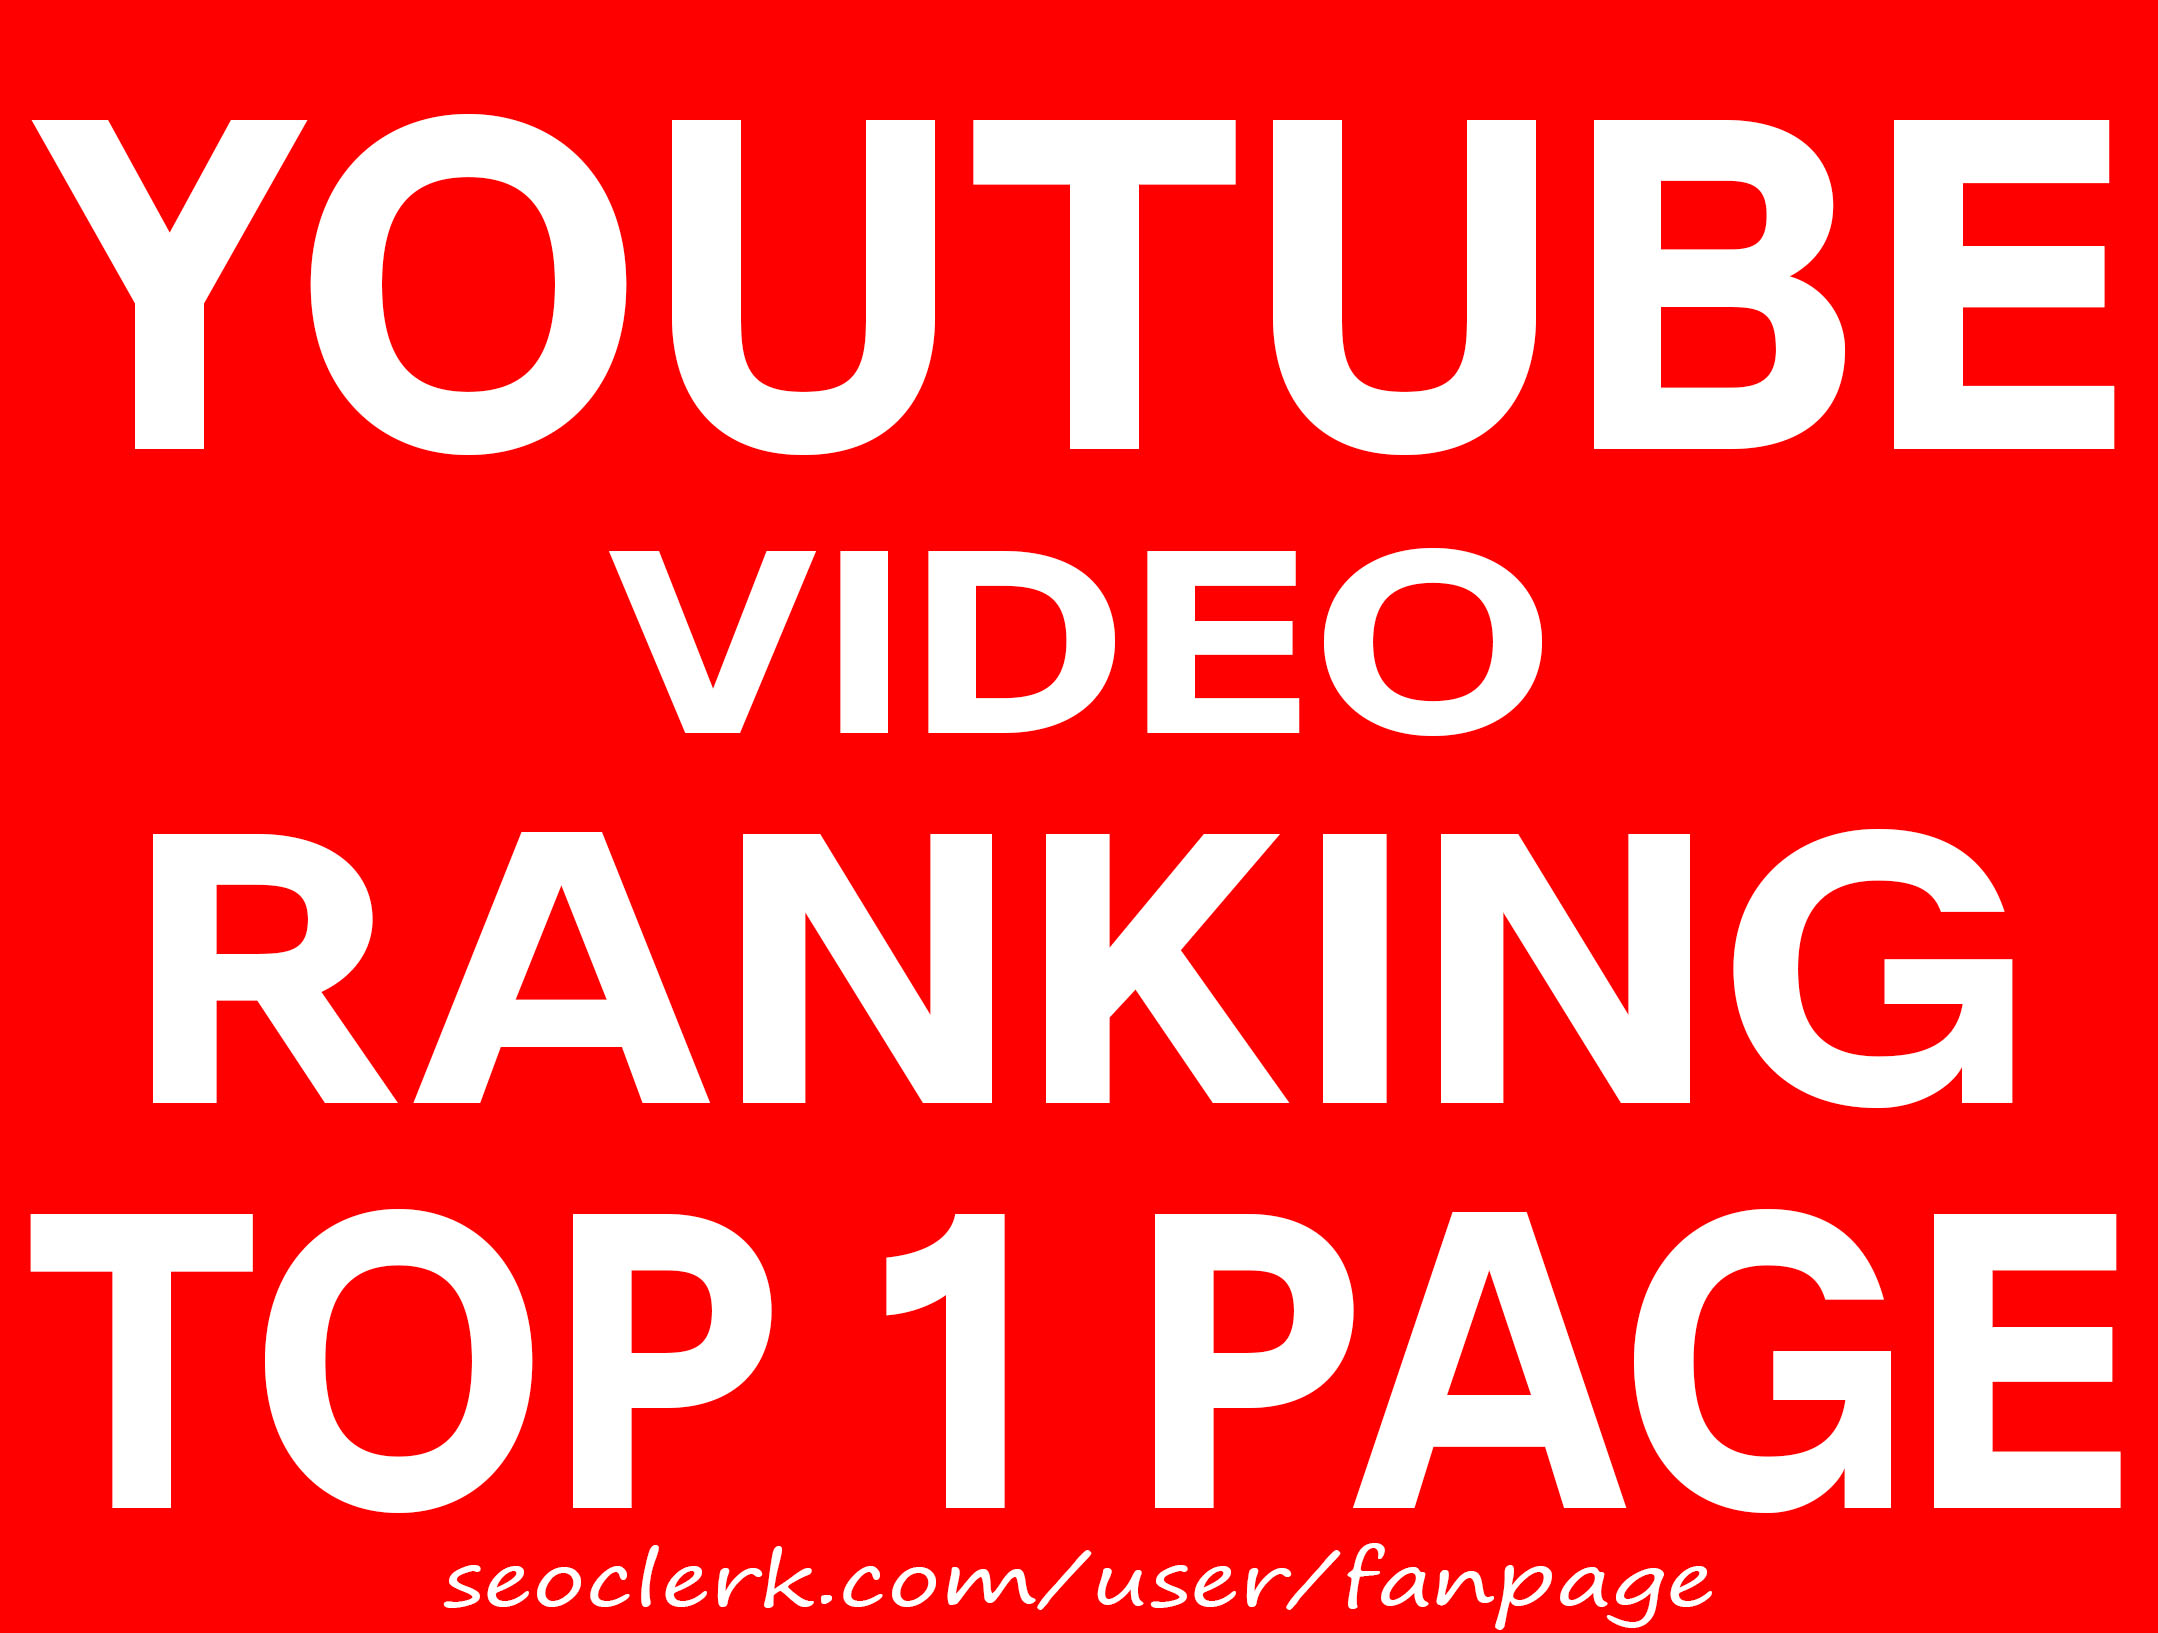 RANK YOUR VIDEO 1 PAGE ON YOUTUBE - VIRAL SEO RANKING - NOBODY RANKS BETTER